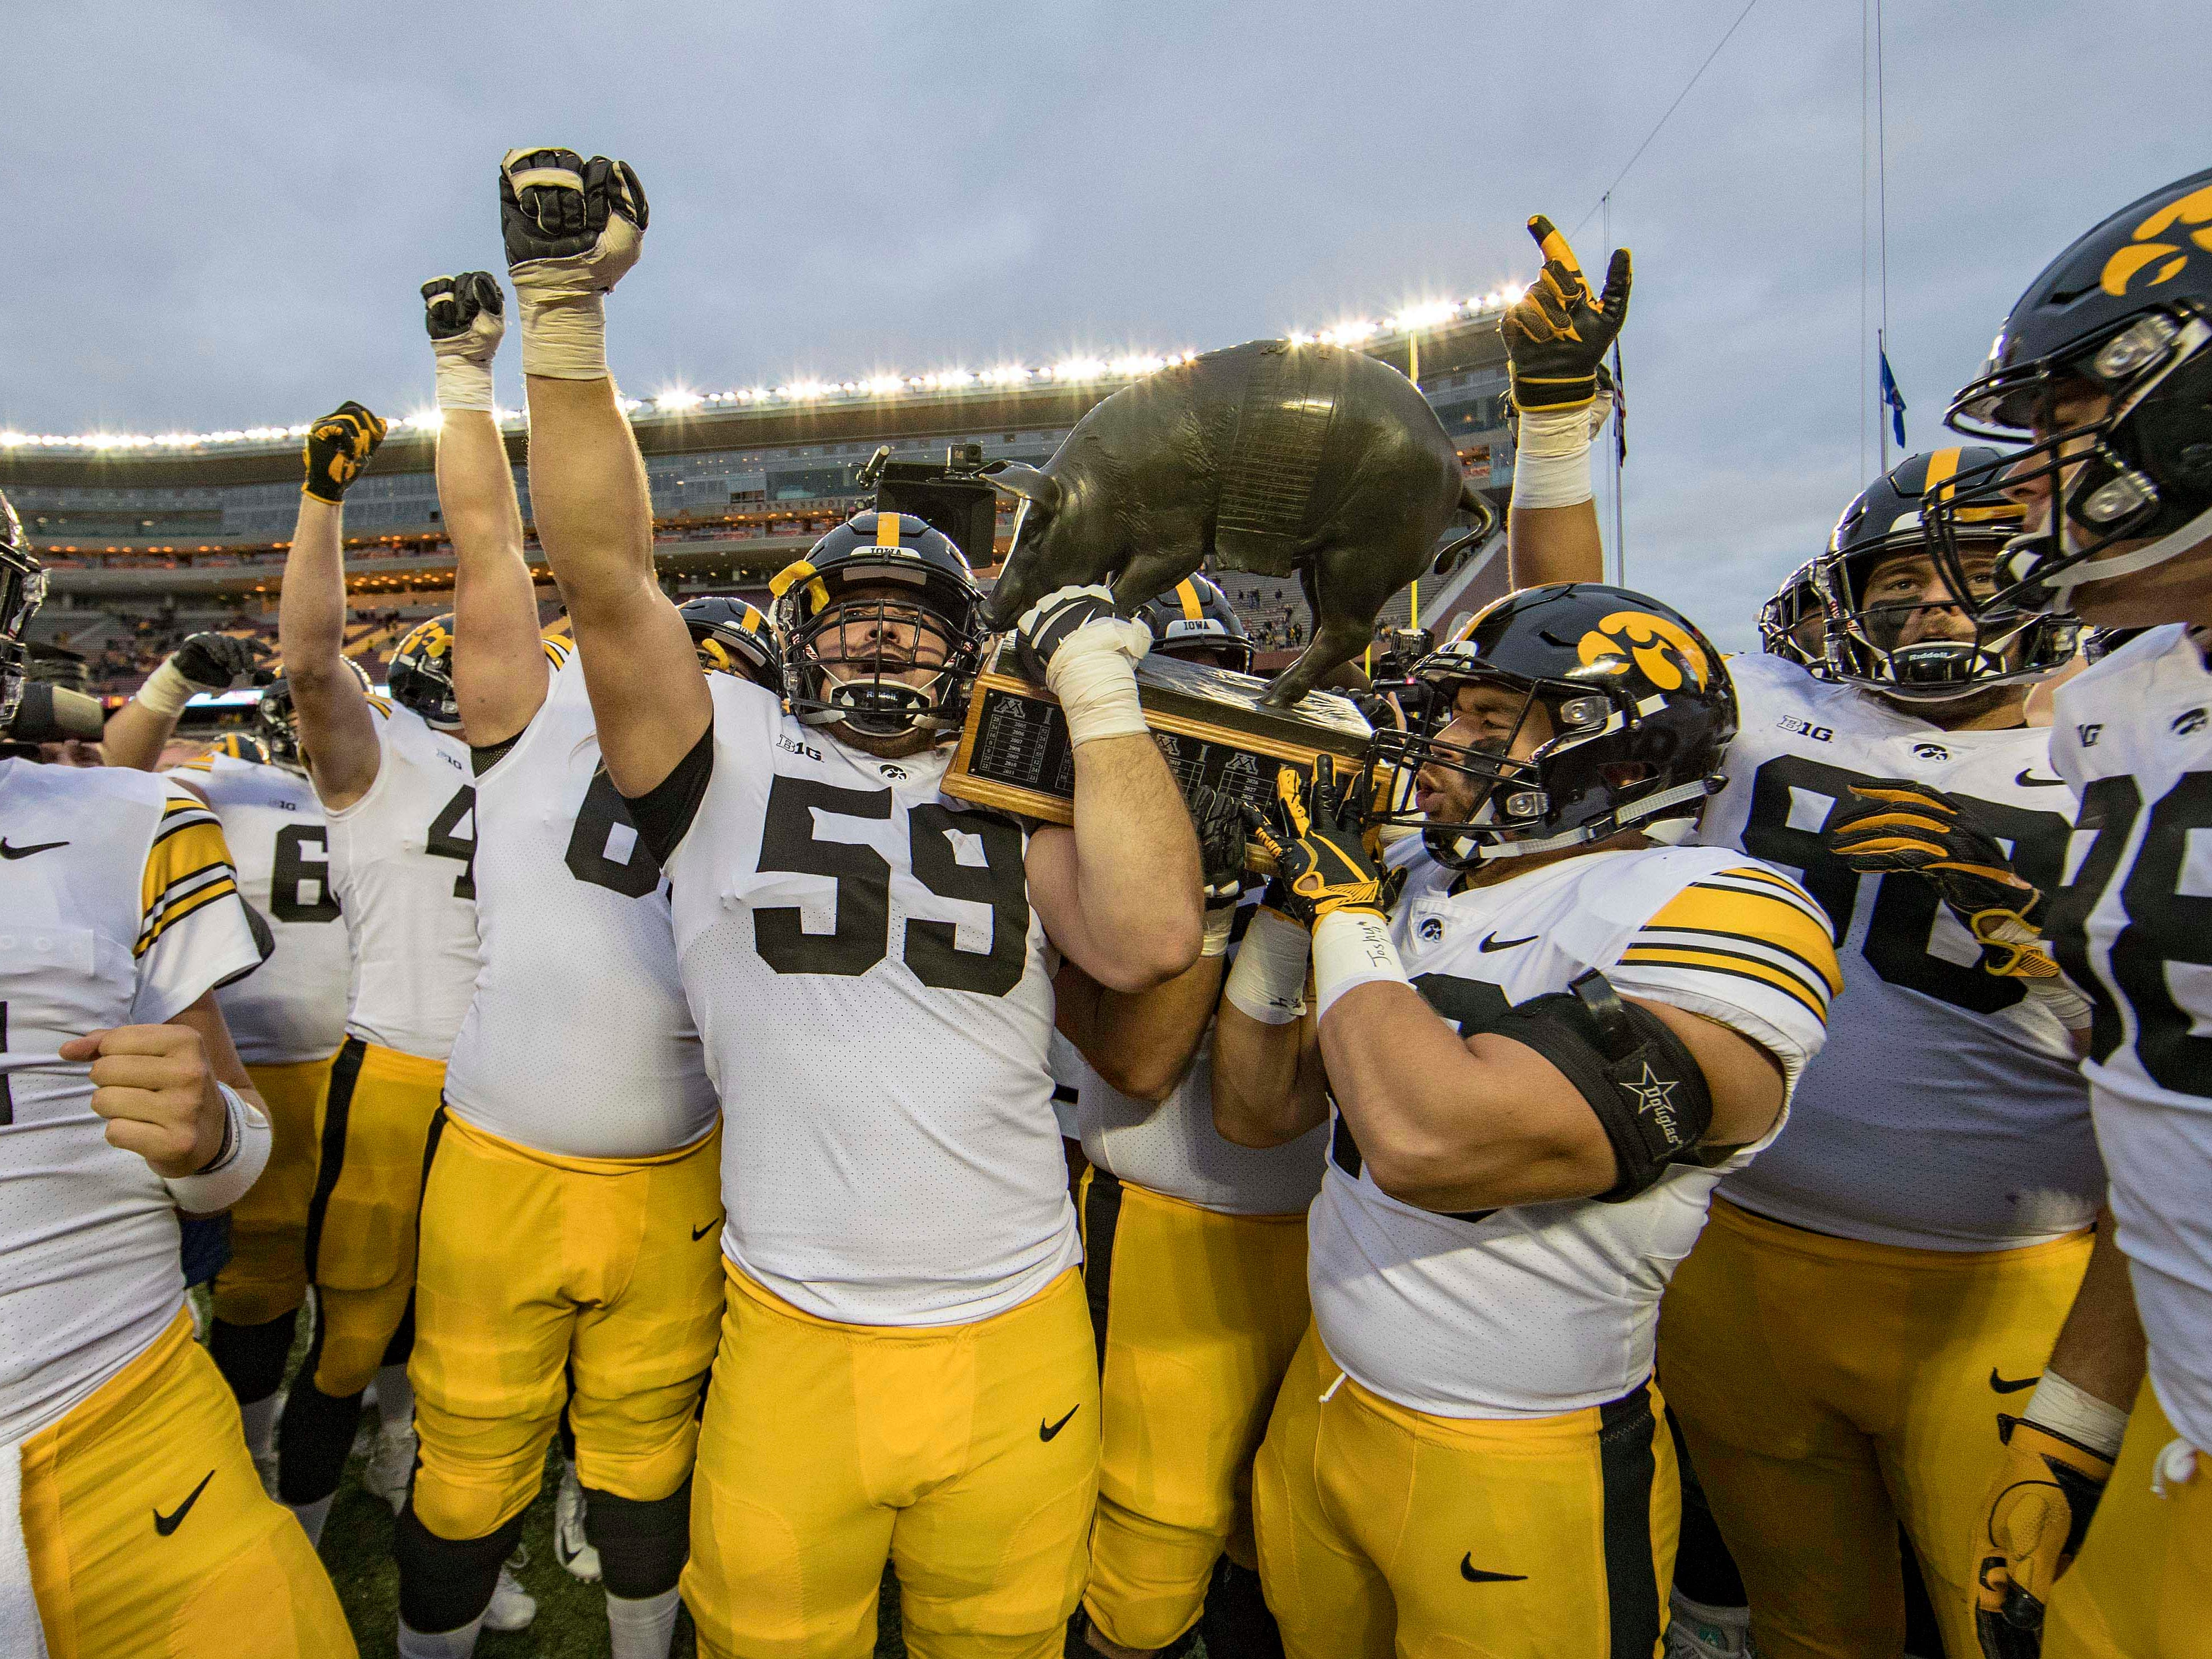 A general view of the Iowa Hawkeyes lifting up the Floyd of Rosedale trophy at TCF Bank Stadium.